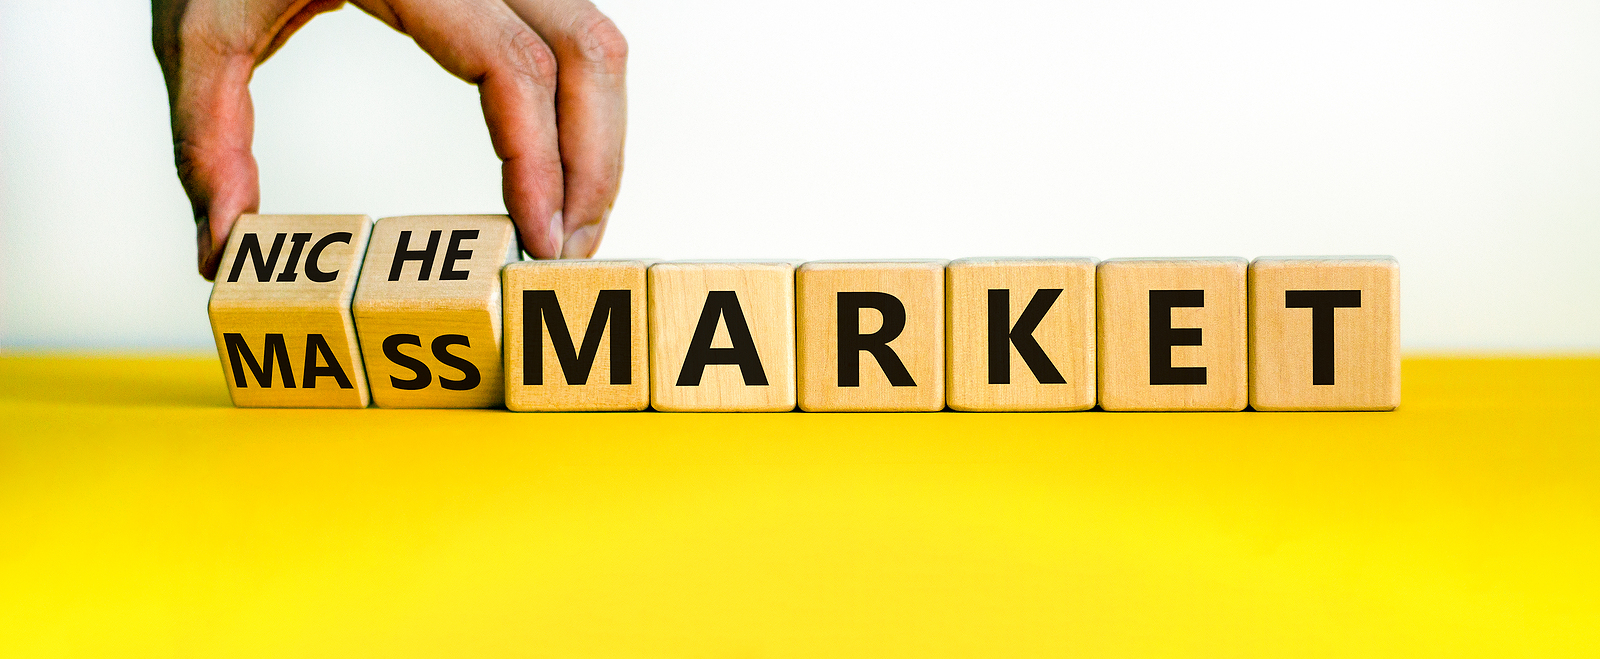 Driver recruiting needs to focus on both niche and mass audiences. Mass or niche market symbol. Businessman flips wooden cubes and changes words 'mass market' to 'niche market'. Beautiful white background, copy space. Business and mass or niche market concept.